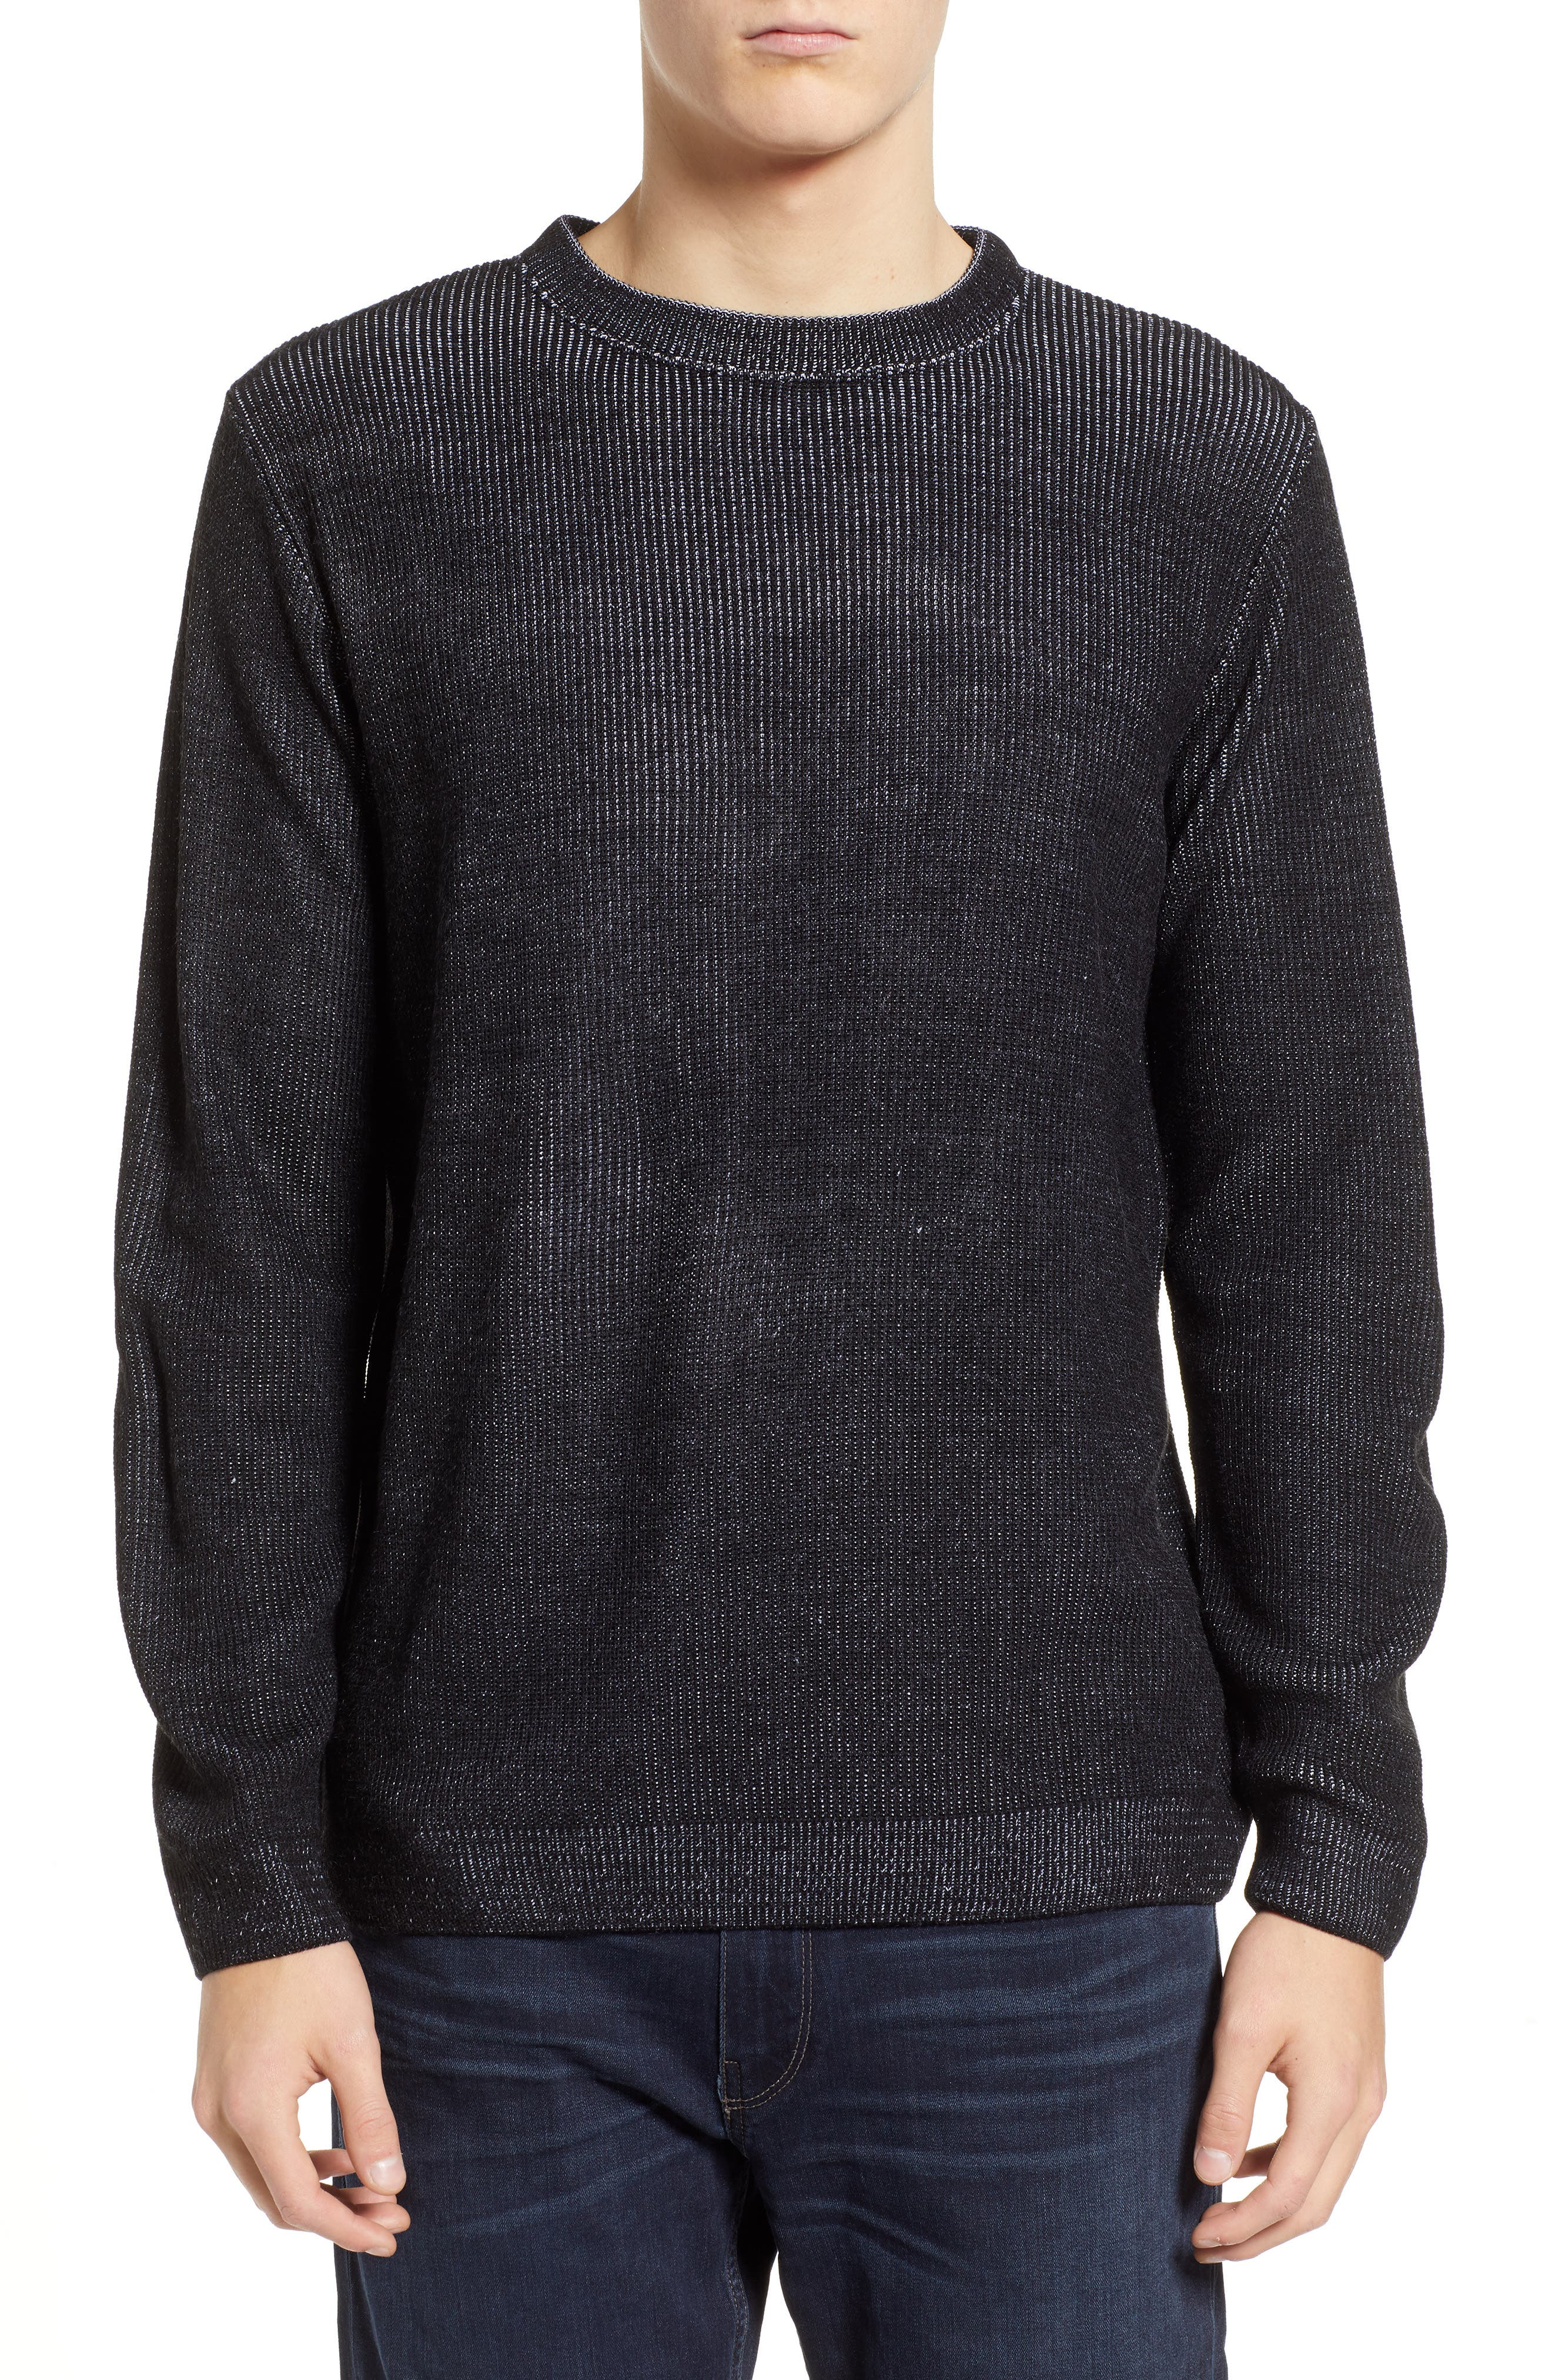 Plaited Crewneck Sweater,                             Main thumbnail 1, color,                             BLACK